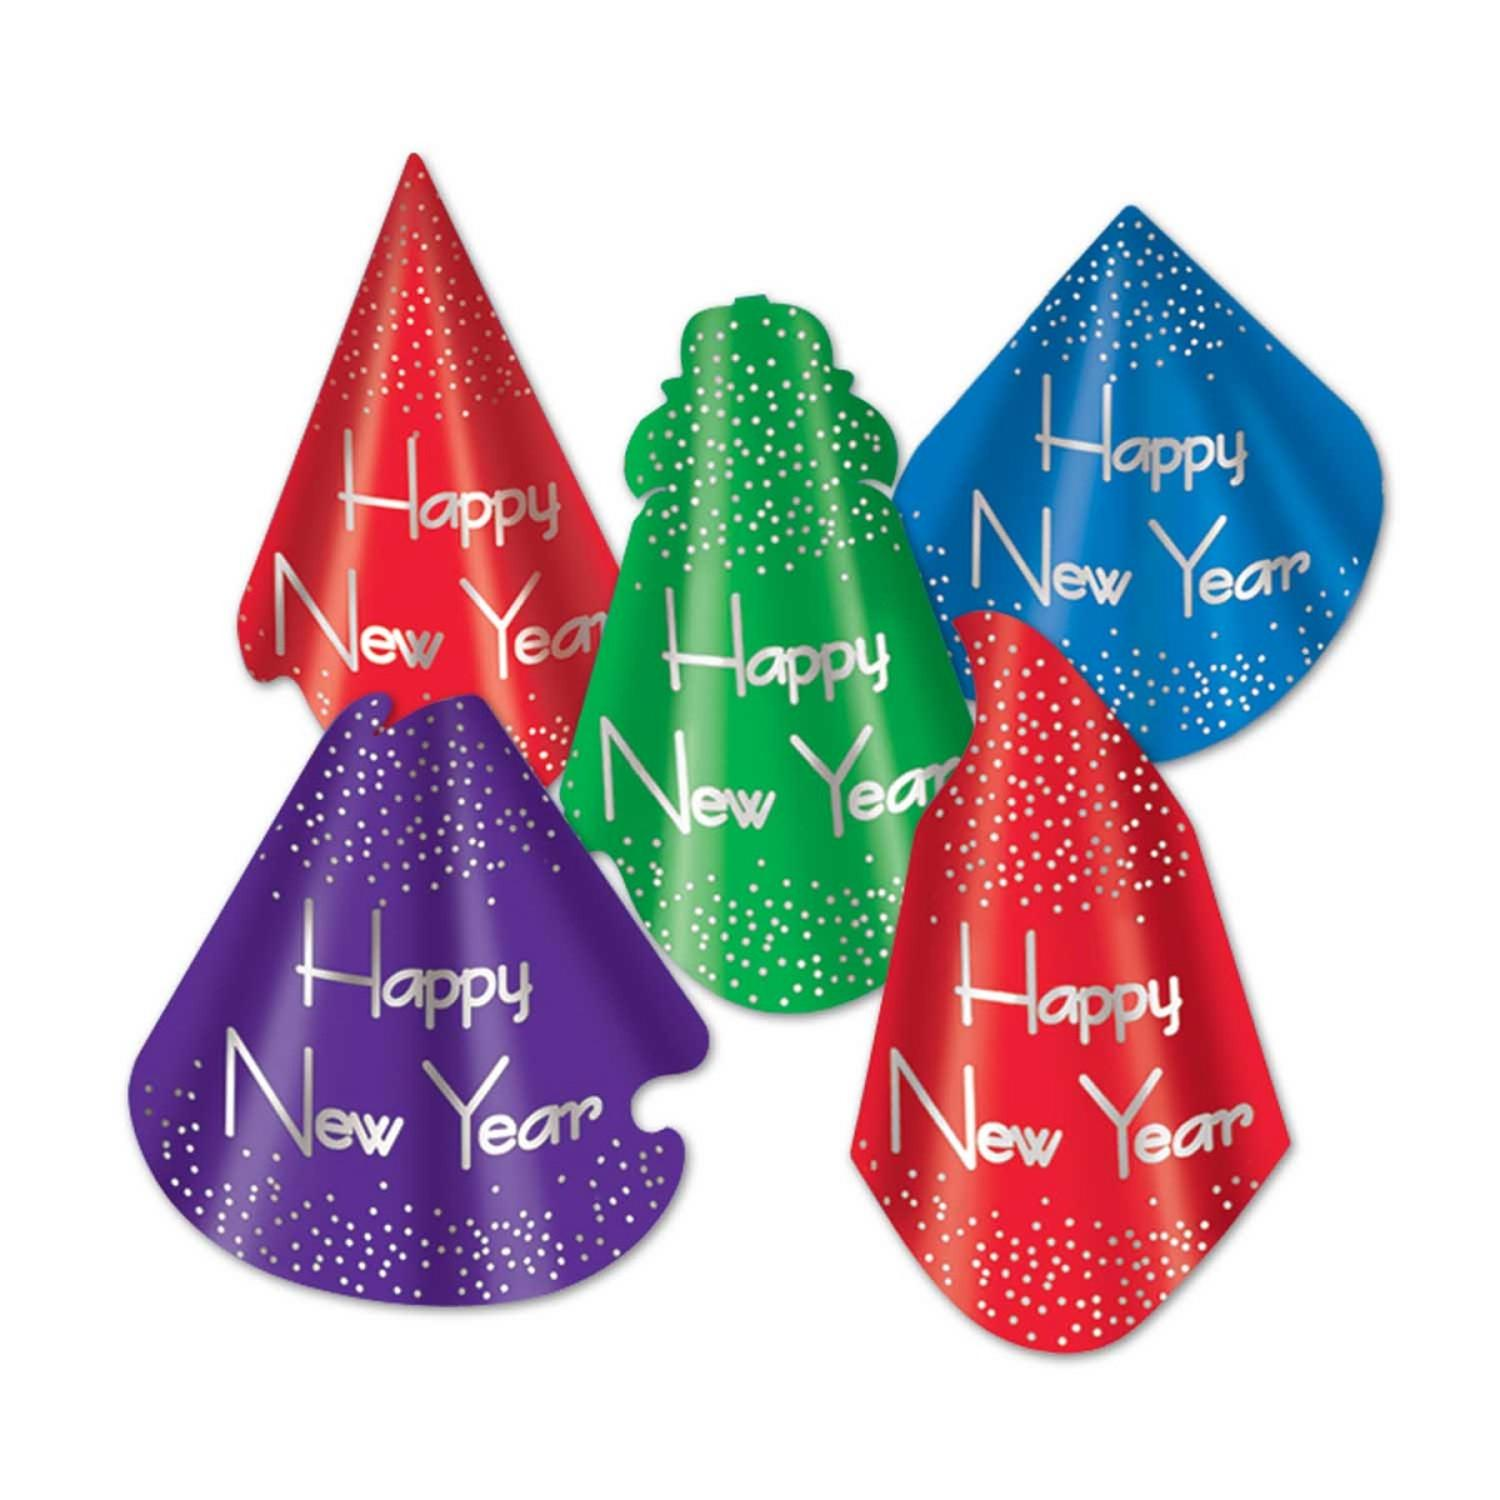 """Club Pack of 50 Headliner """"Happy New Years"""" Legacy Party Favor Hats"""